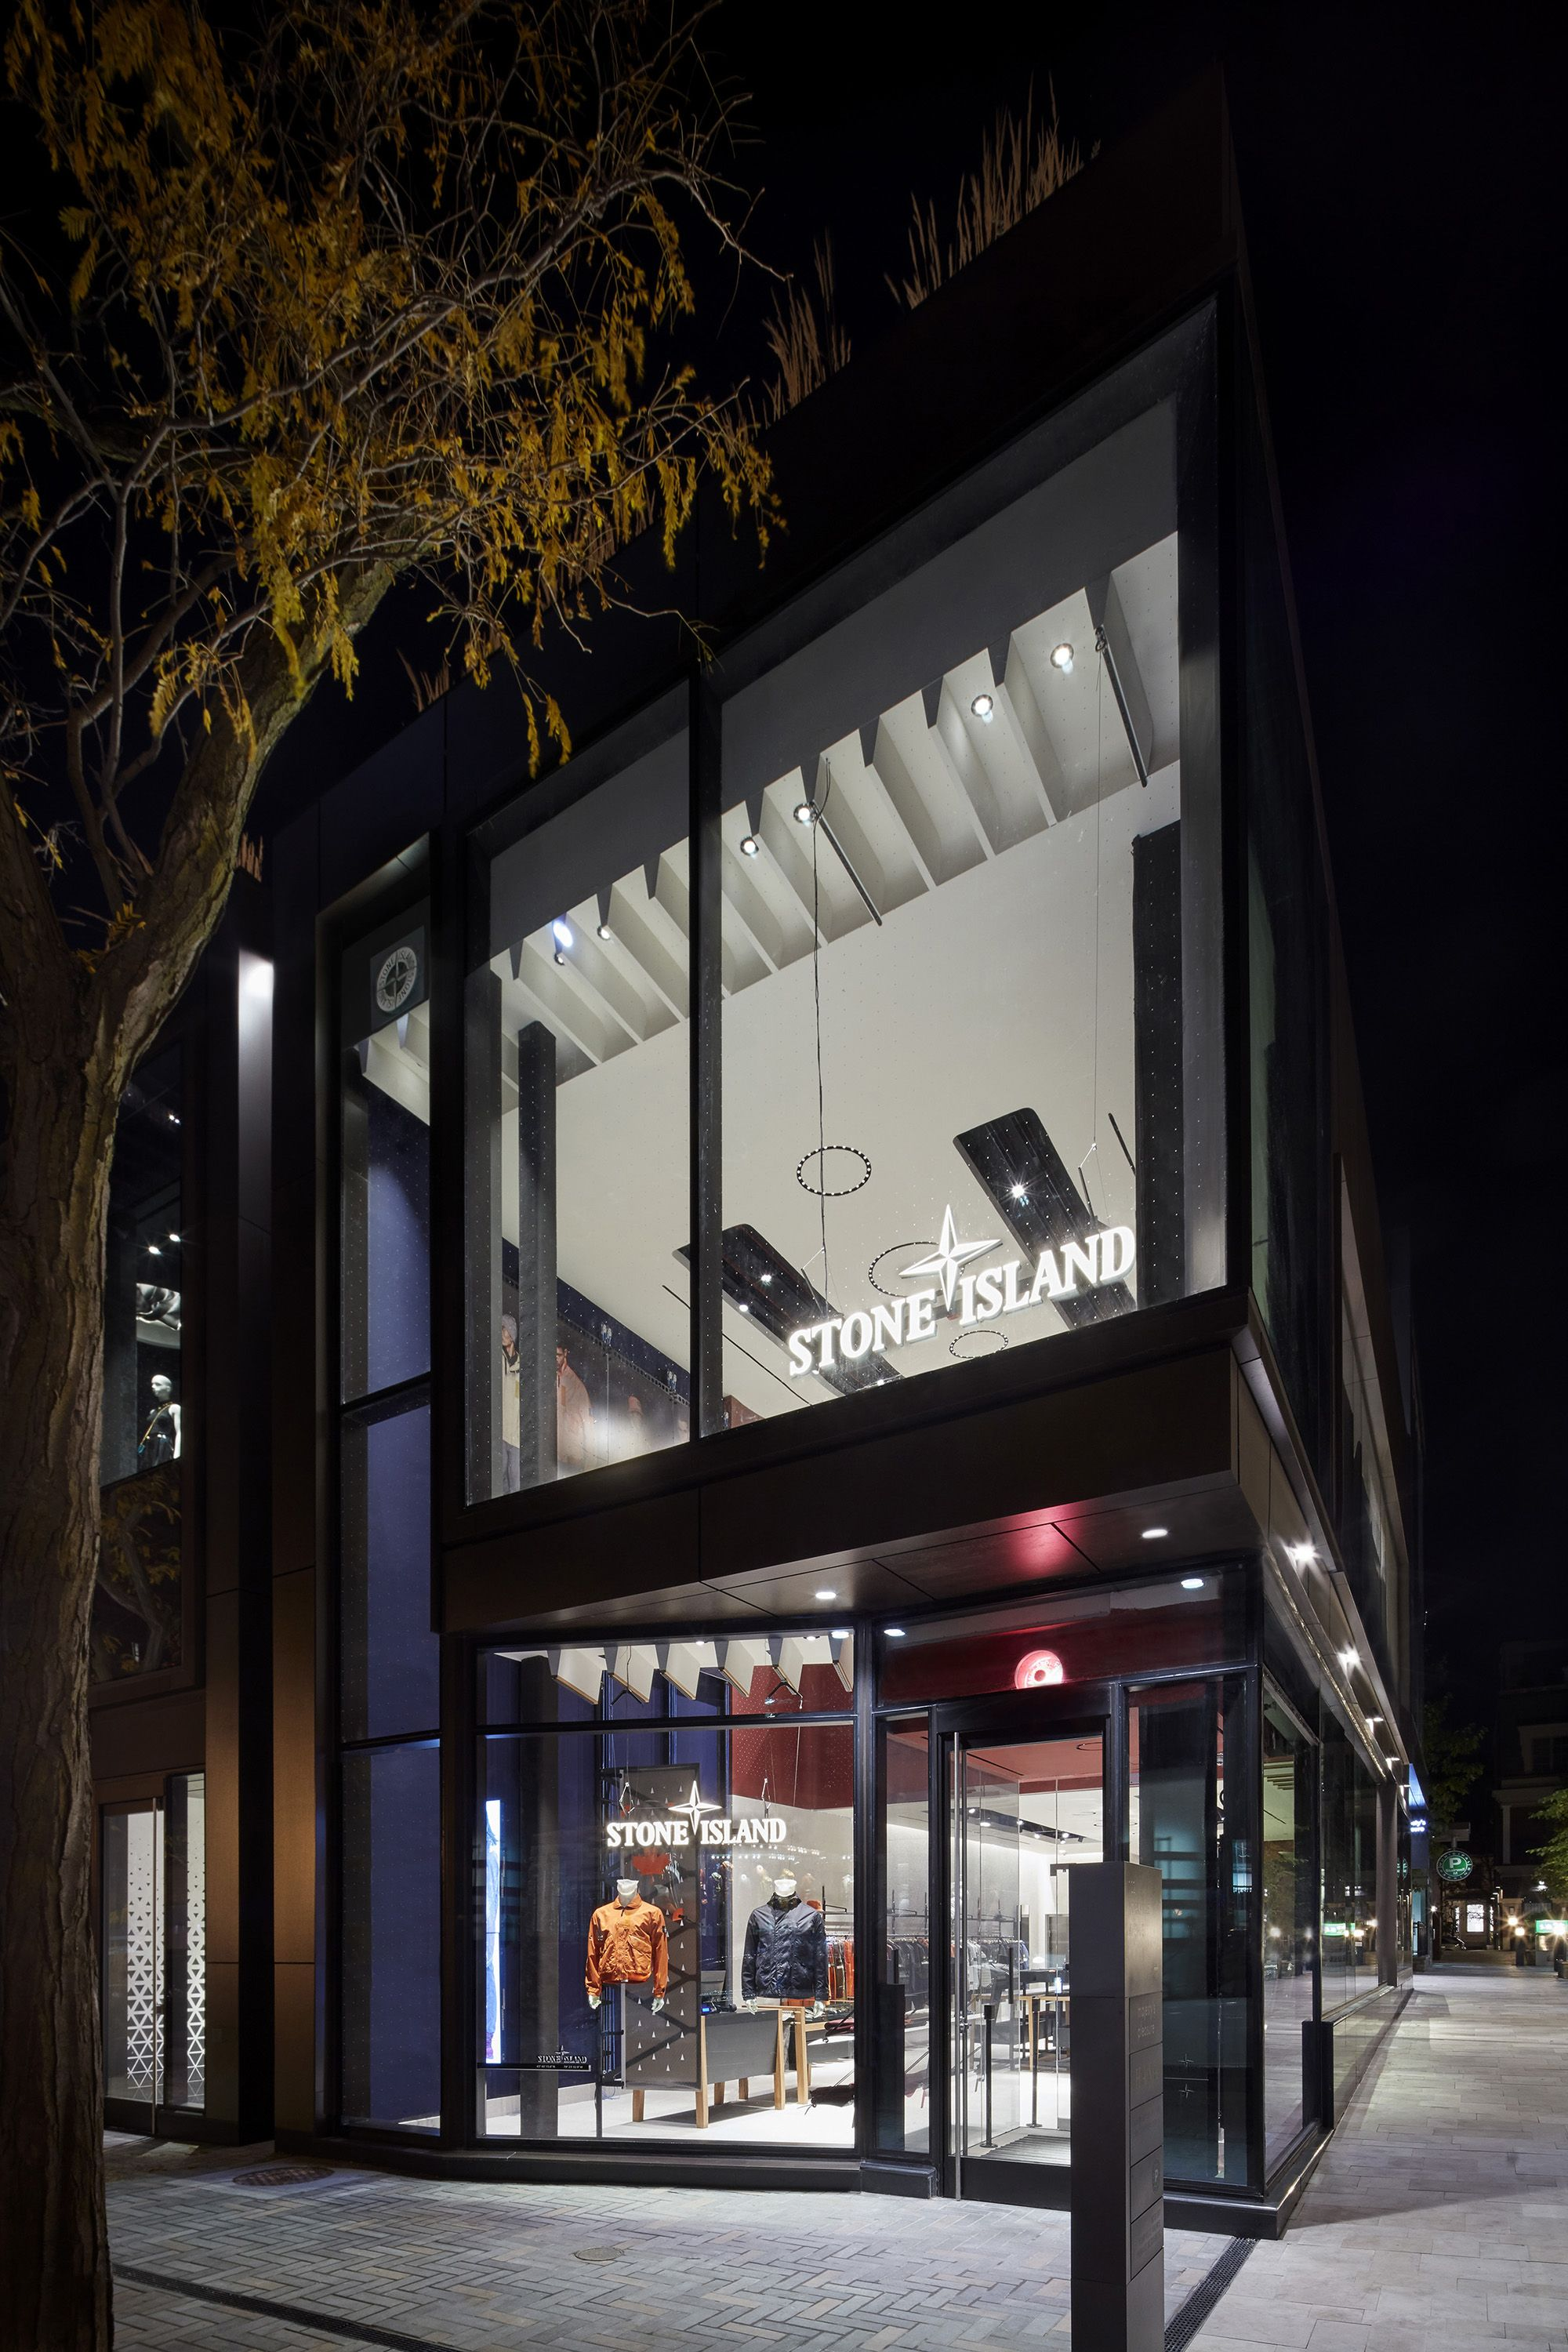 The Stone Island Store in Toronto at 104 Yorkville Ave